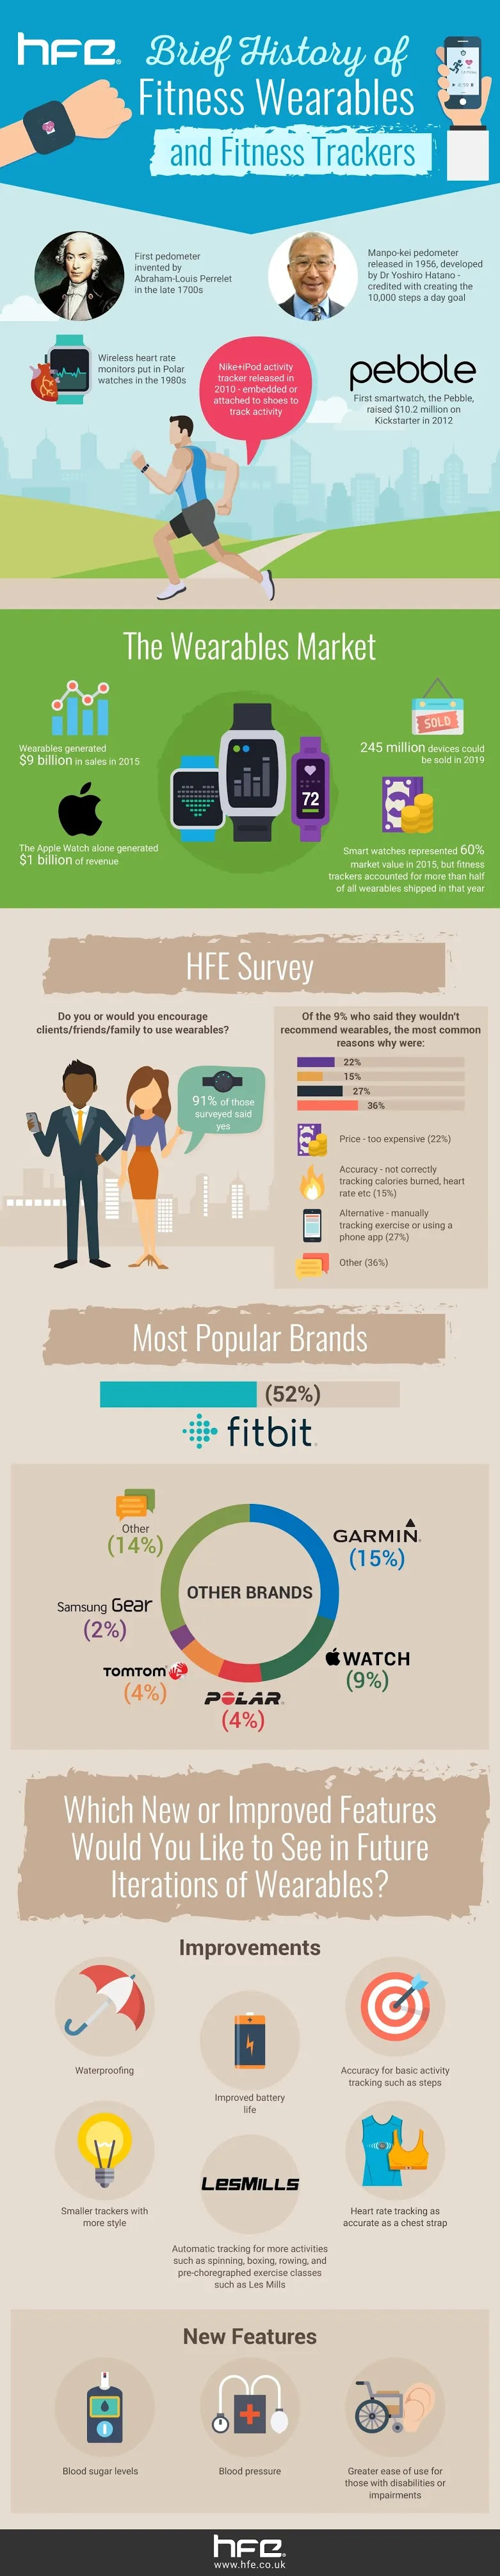 Brief History of Fitness Wearables and Fitness Tracker #infographic